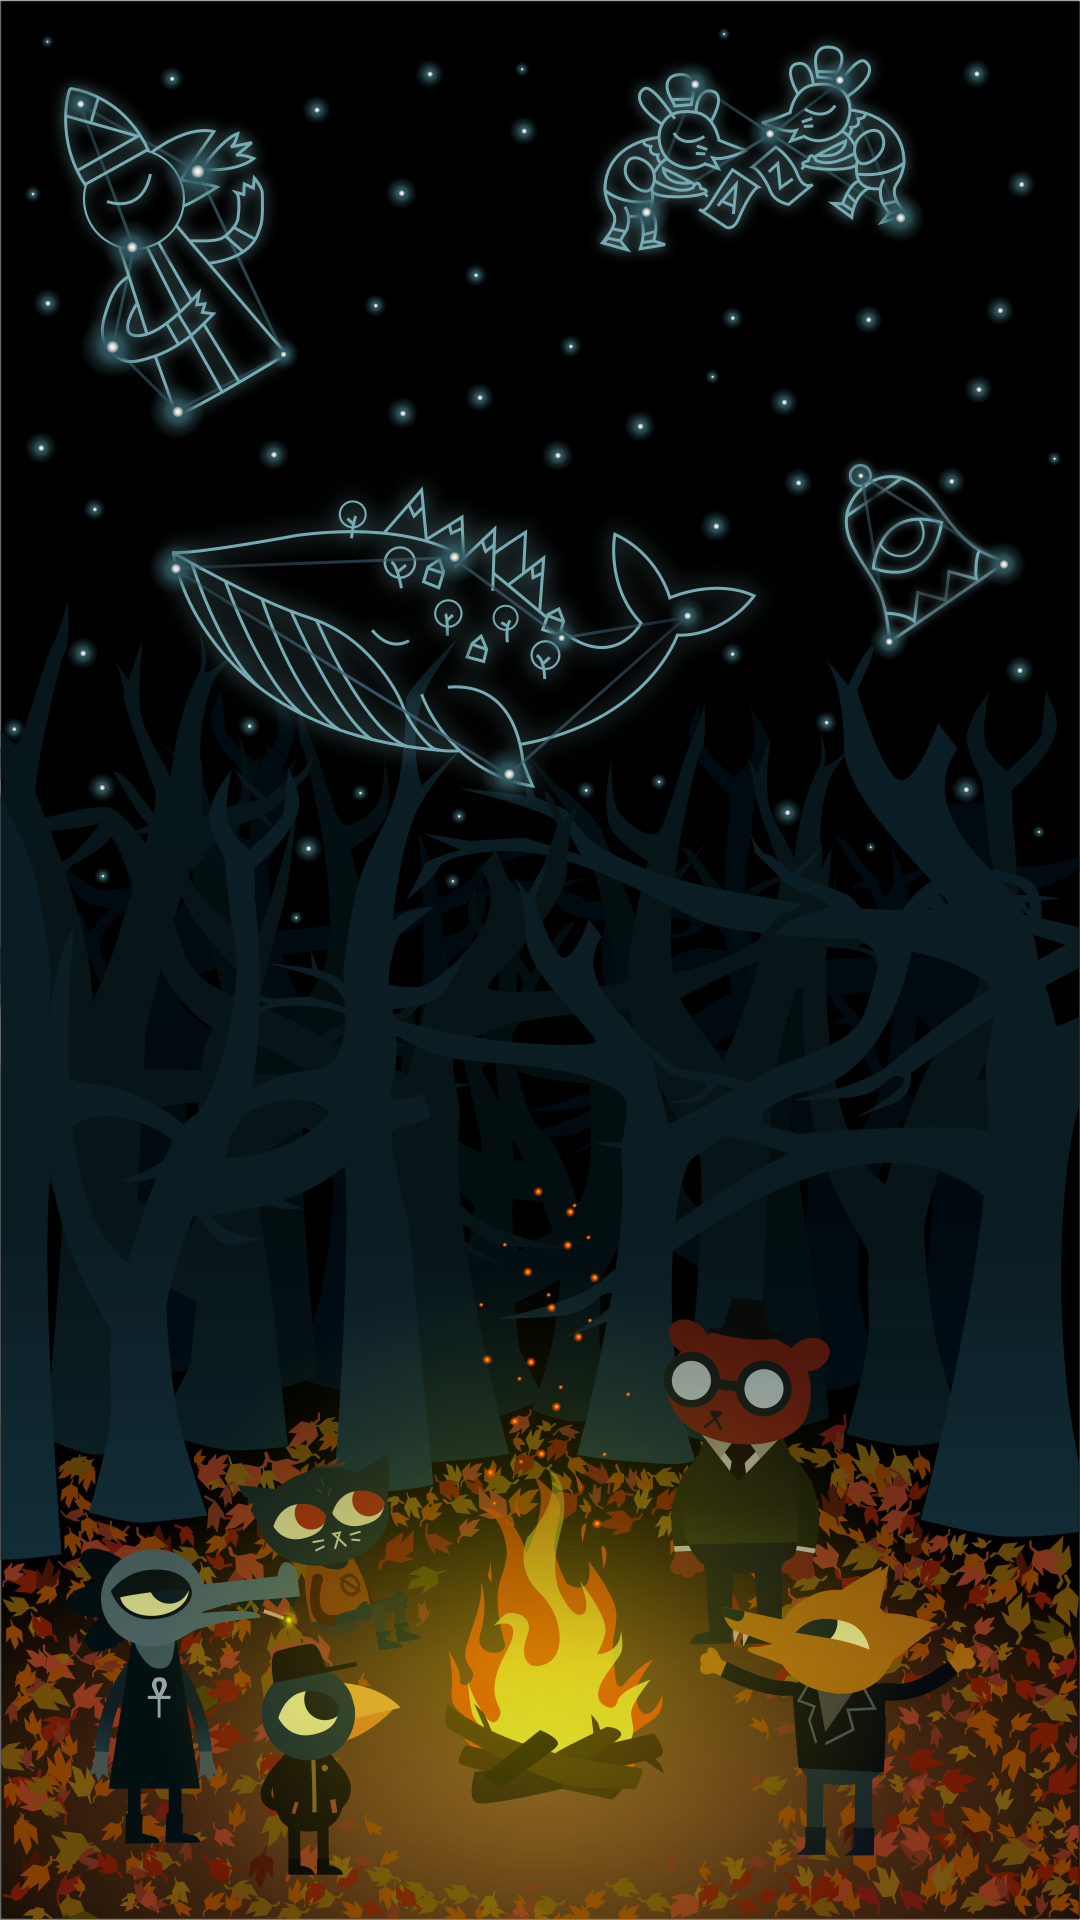 Night In The Woods Wallpaper Night In The Wood Phone Wallpaper For Men Wood Wallpaper